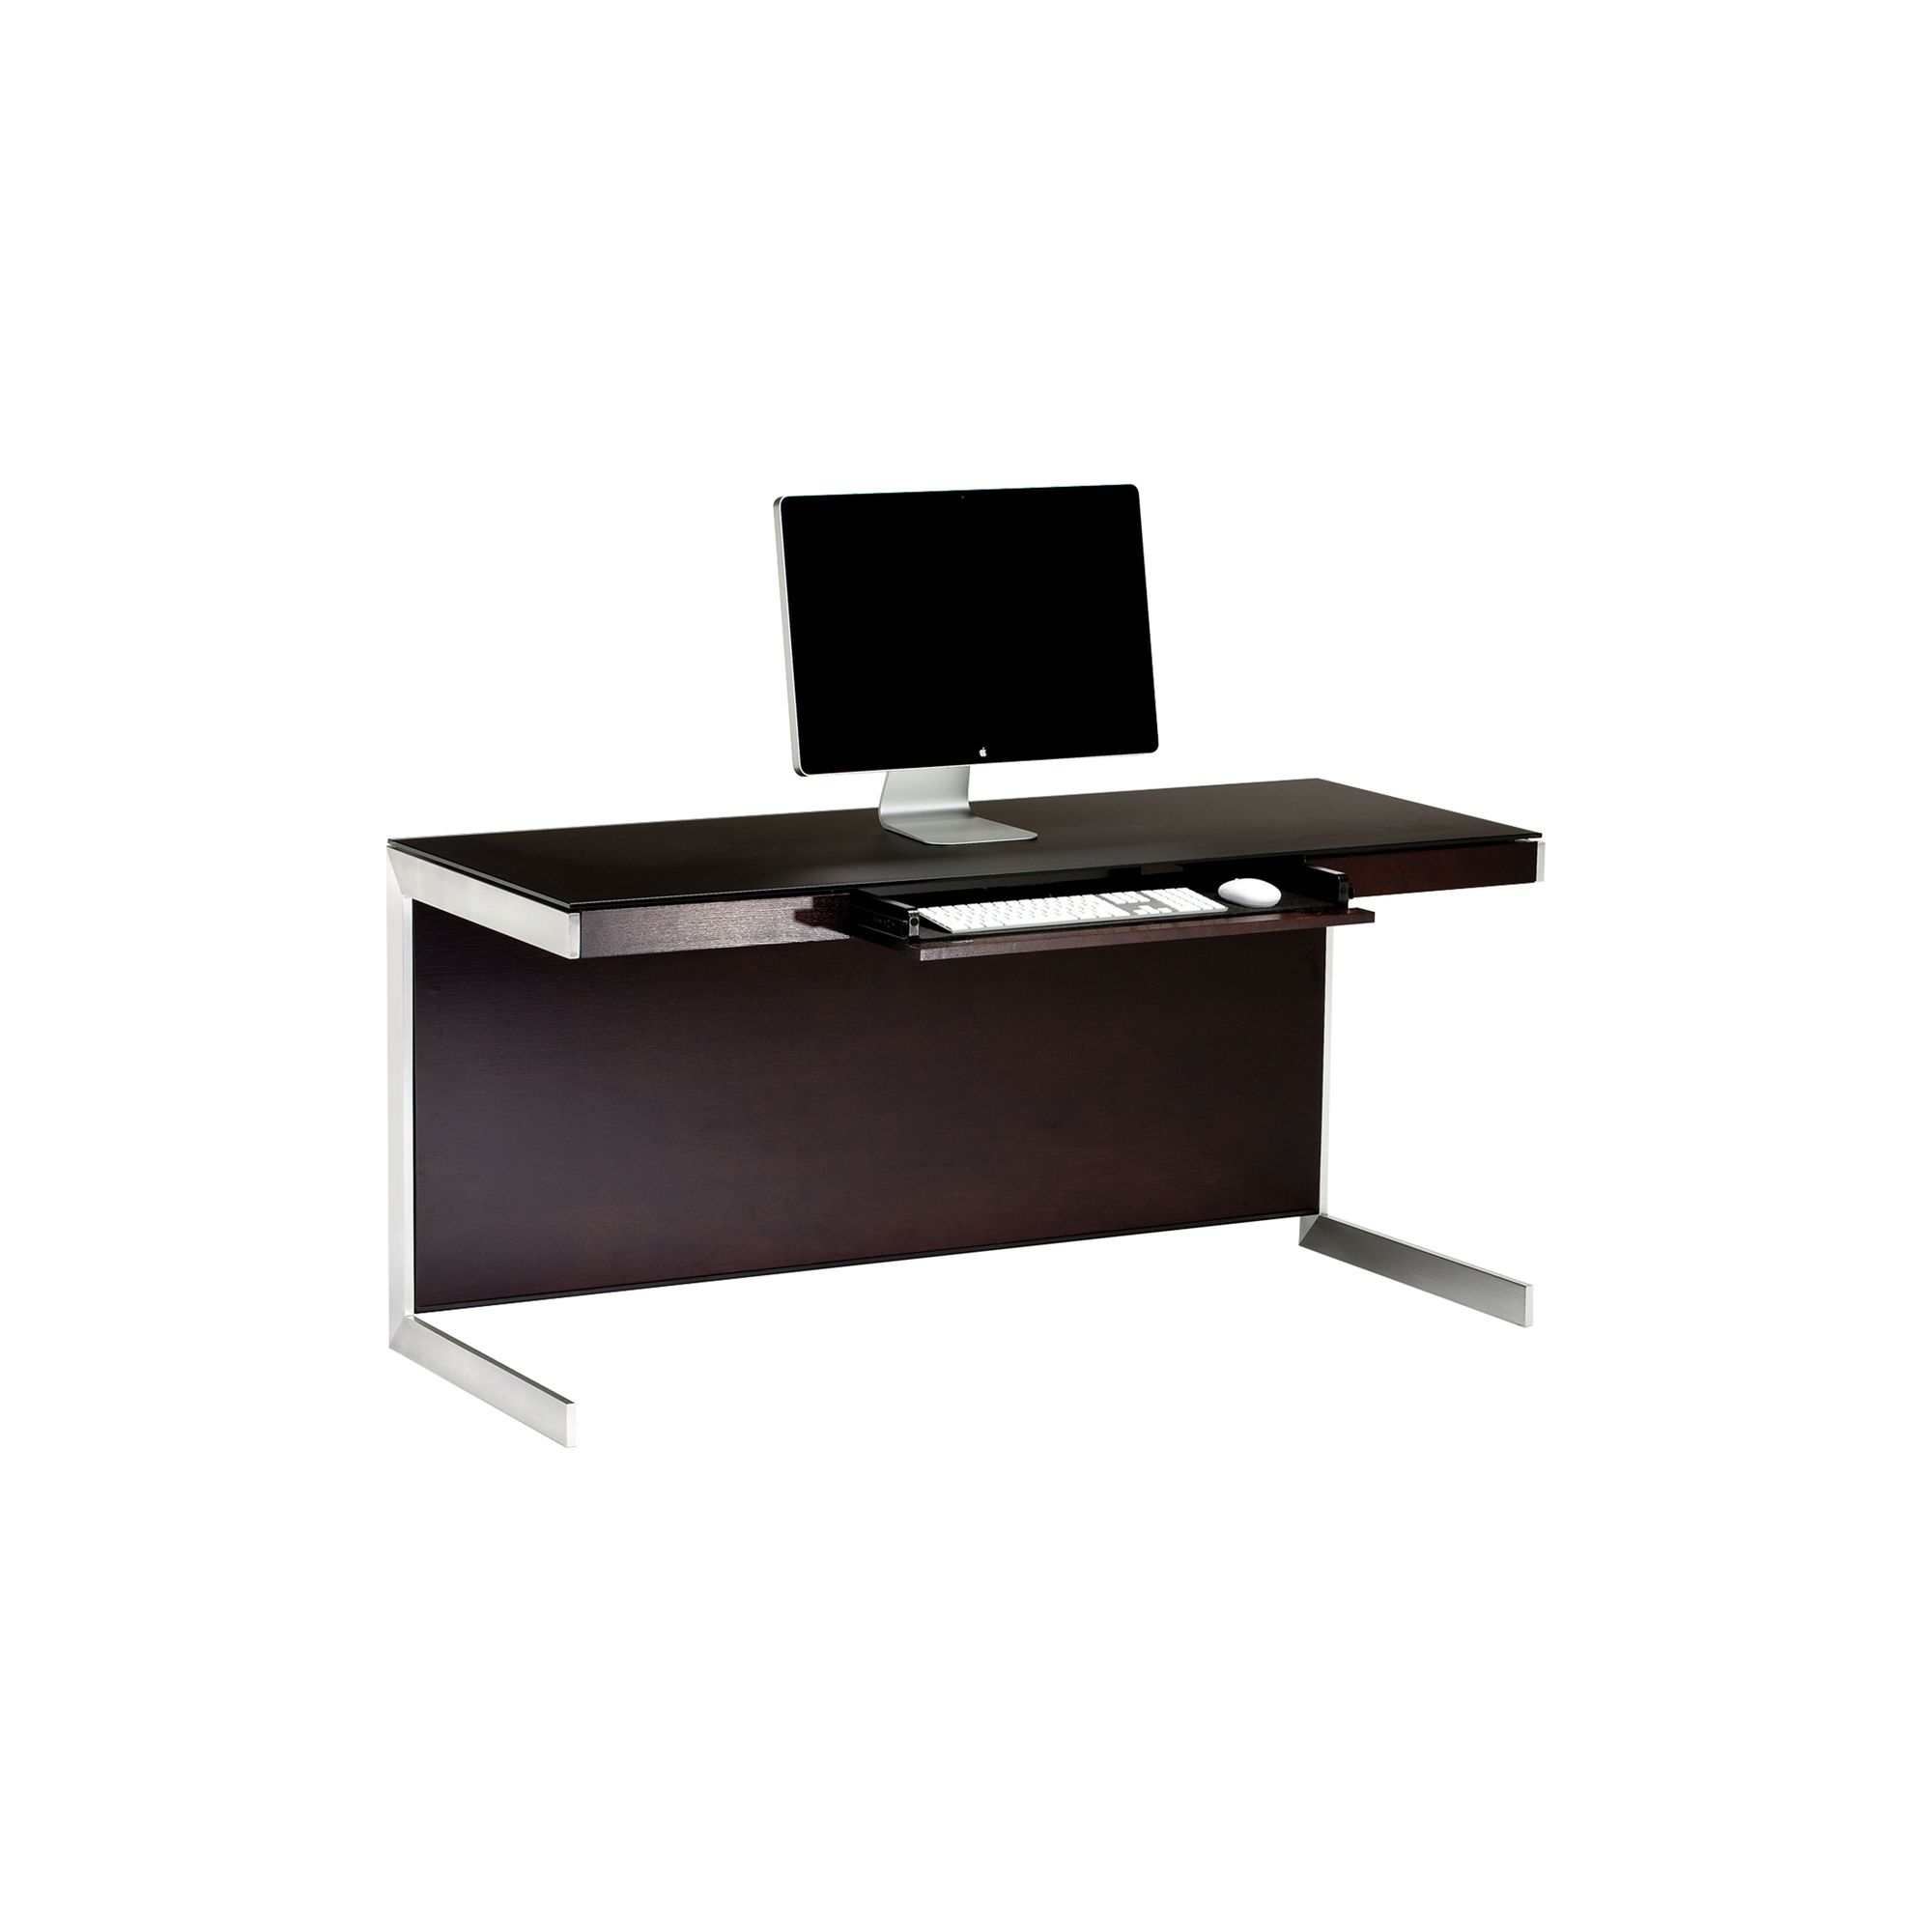 Sequel 6001 Desk in Espresso Stained Oak with Glass Top at Tesco Direct